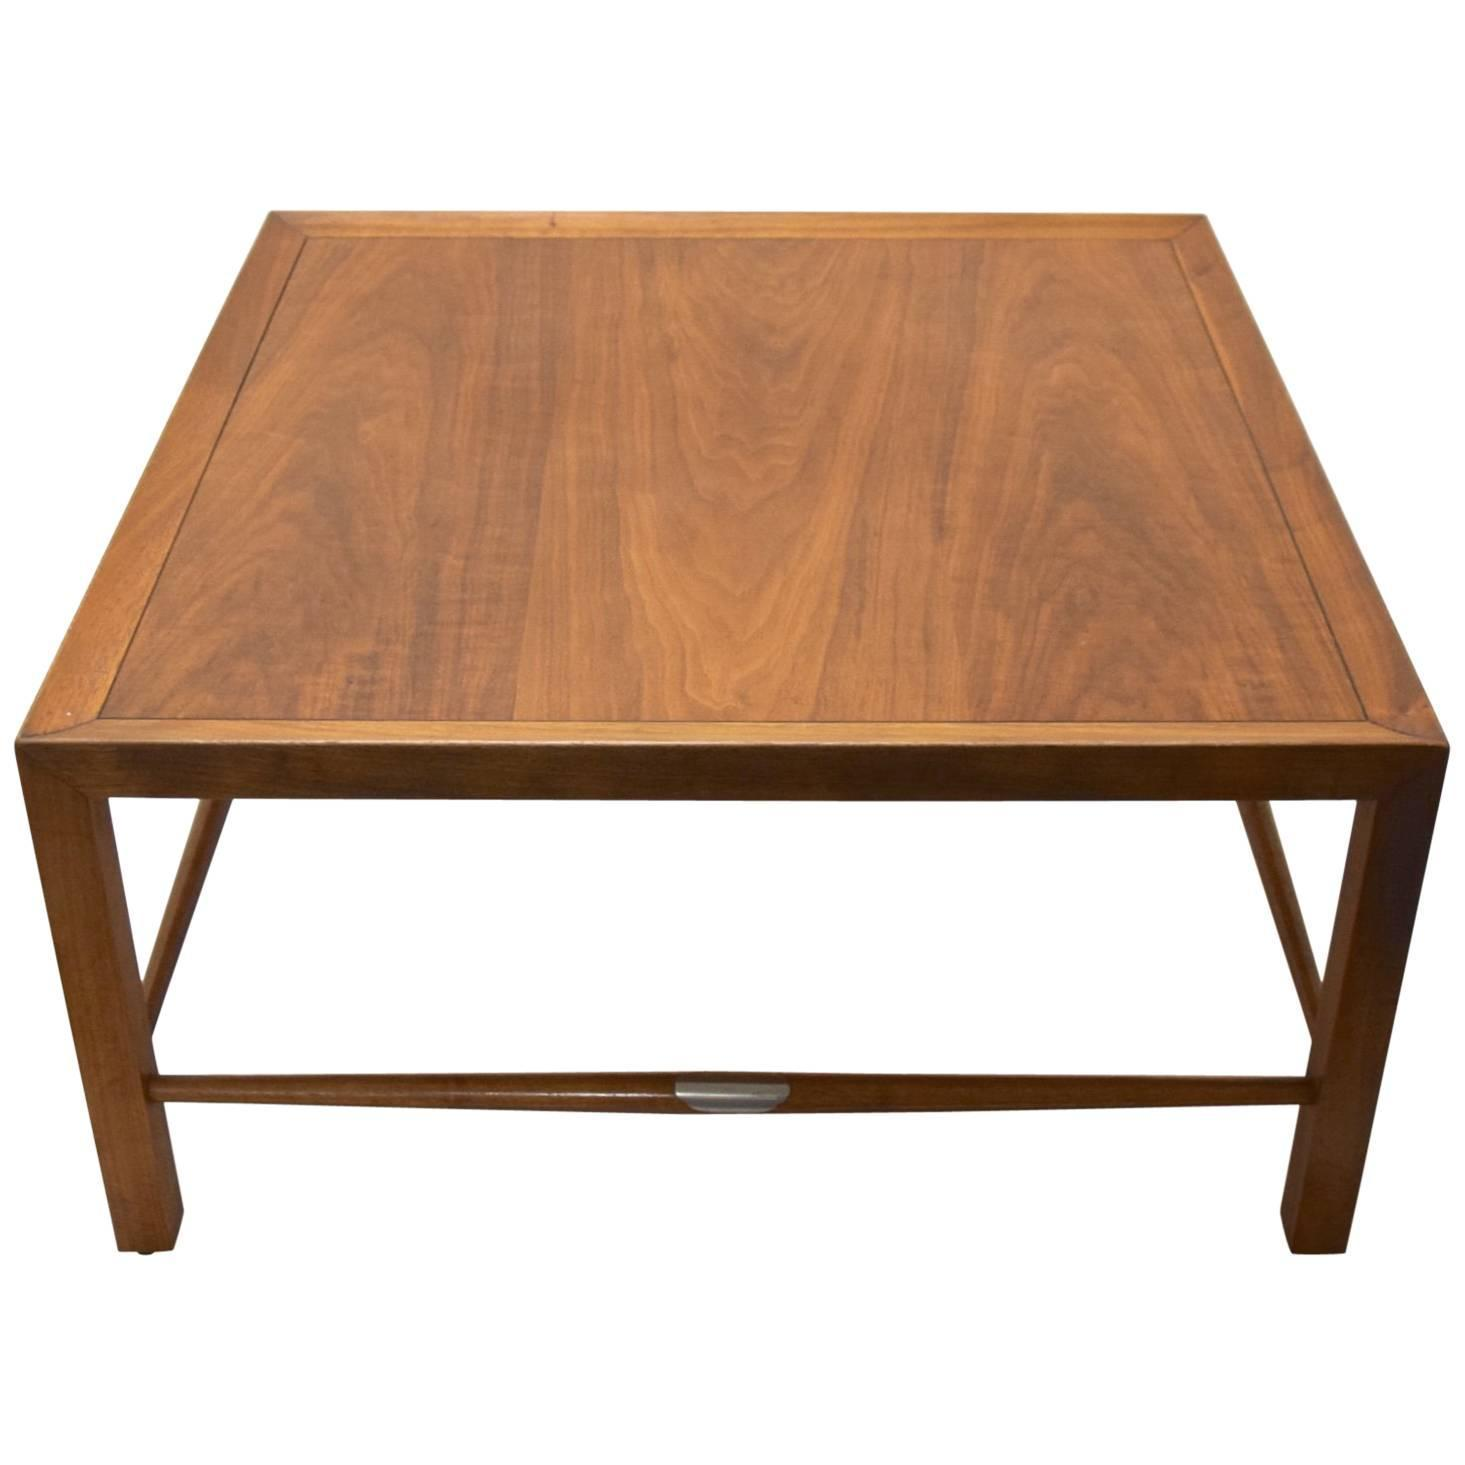 Walnut Coffee Display Center Round Table by Henredon For Sale at